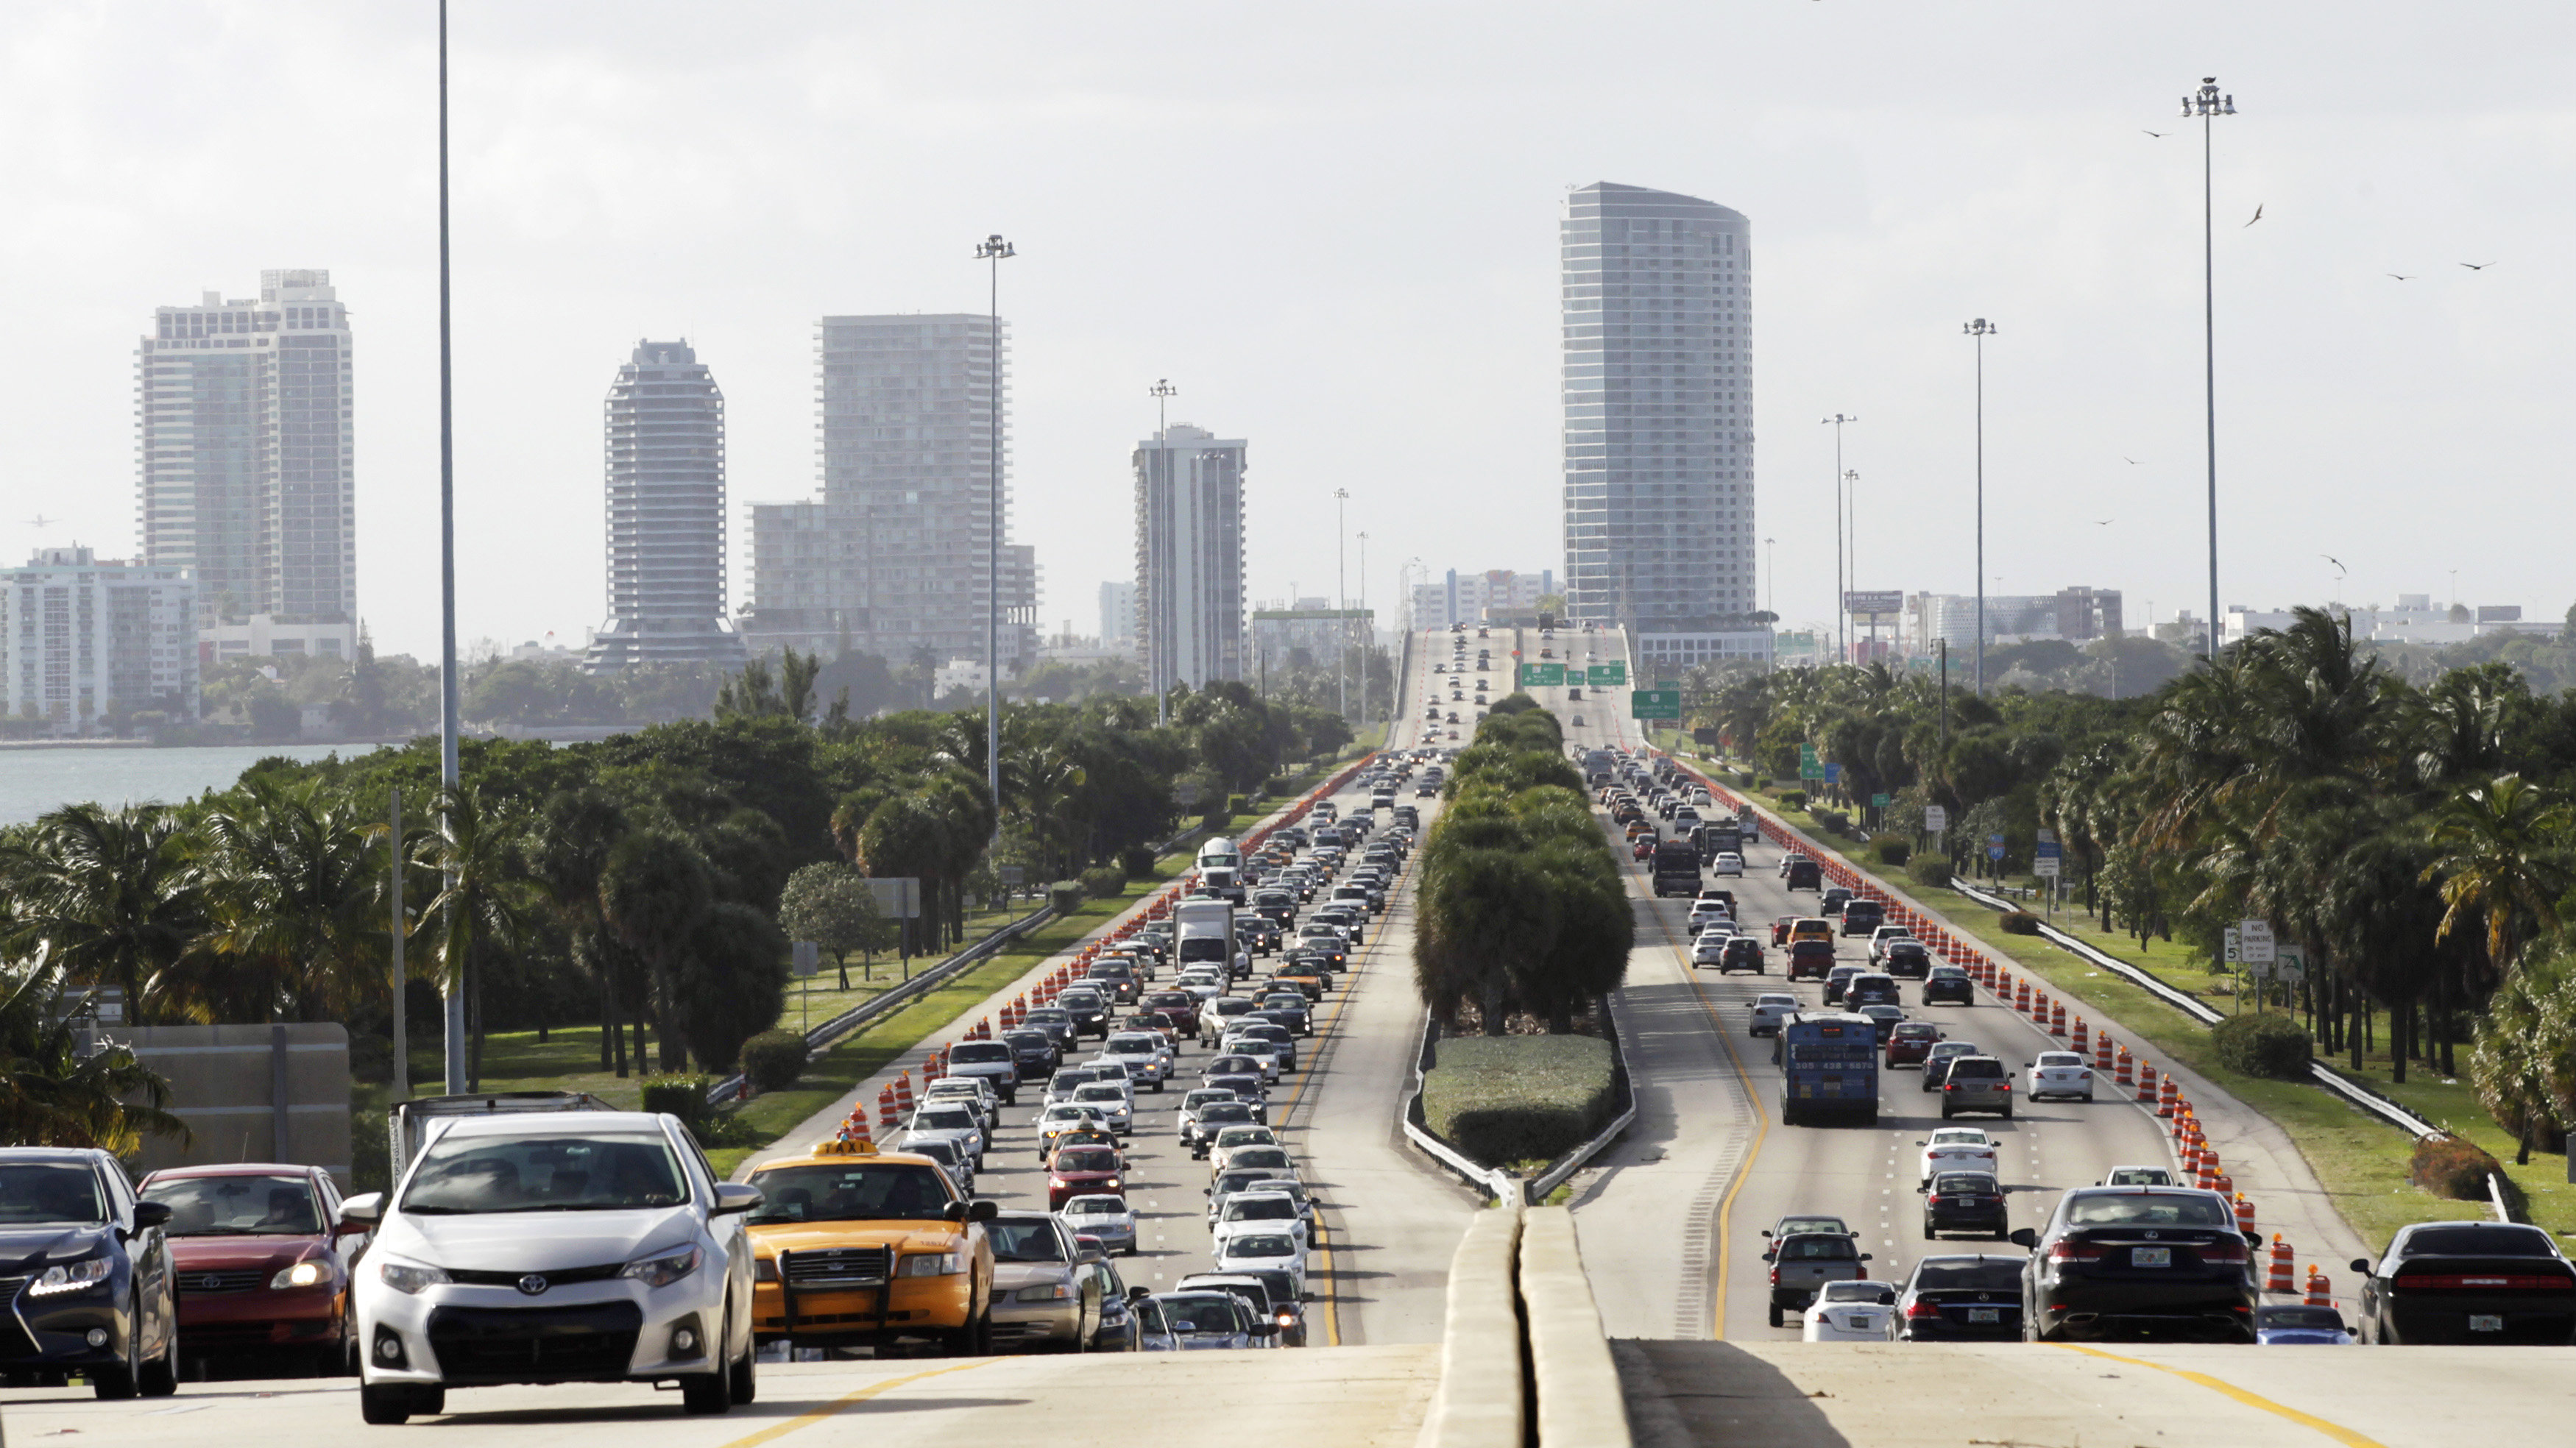 """Traffic leading towards Art Basel on Miami Beach is seen with the skyline of midtown Miami in the background December 4, 2014. An estimated 70,000 art enthusiasts have converged on the city during its annual contemporary """"Art Week,"""" centered around an event called the Art Basel Miami Beach fair. A handful of gallery owners have begun shying away, citing rising rents, few art buyers and condominium development. Still, the graffiti art is welcomed in a city trying to enhance its fun-in-the-sun image and become a more cultured metropolis. Picture taken December 4, 2014. To match Feature USA-MIAMI/GRAFFITI REUTERS/Andrew Innerarity"""